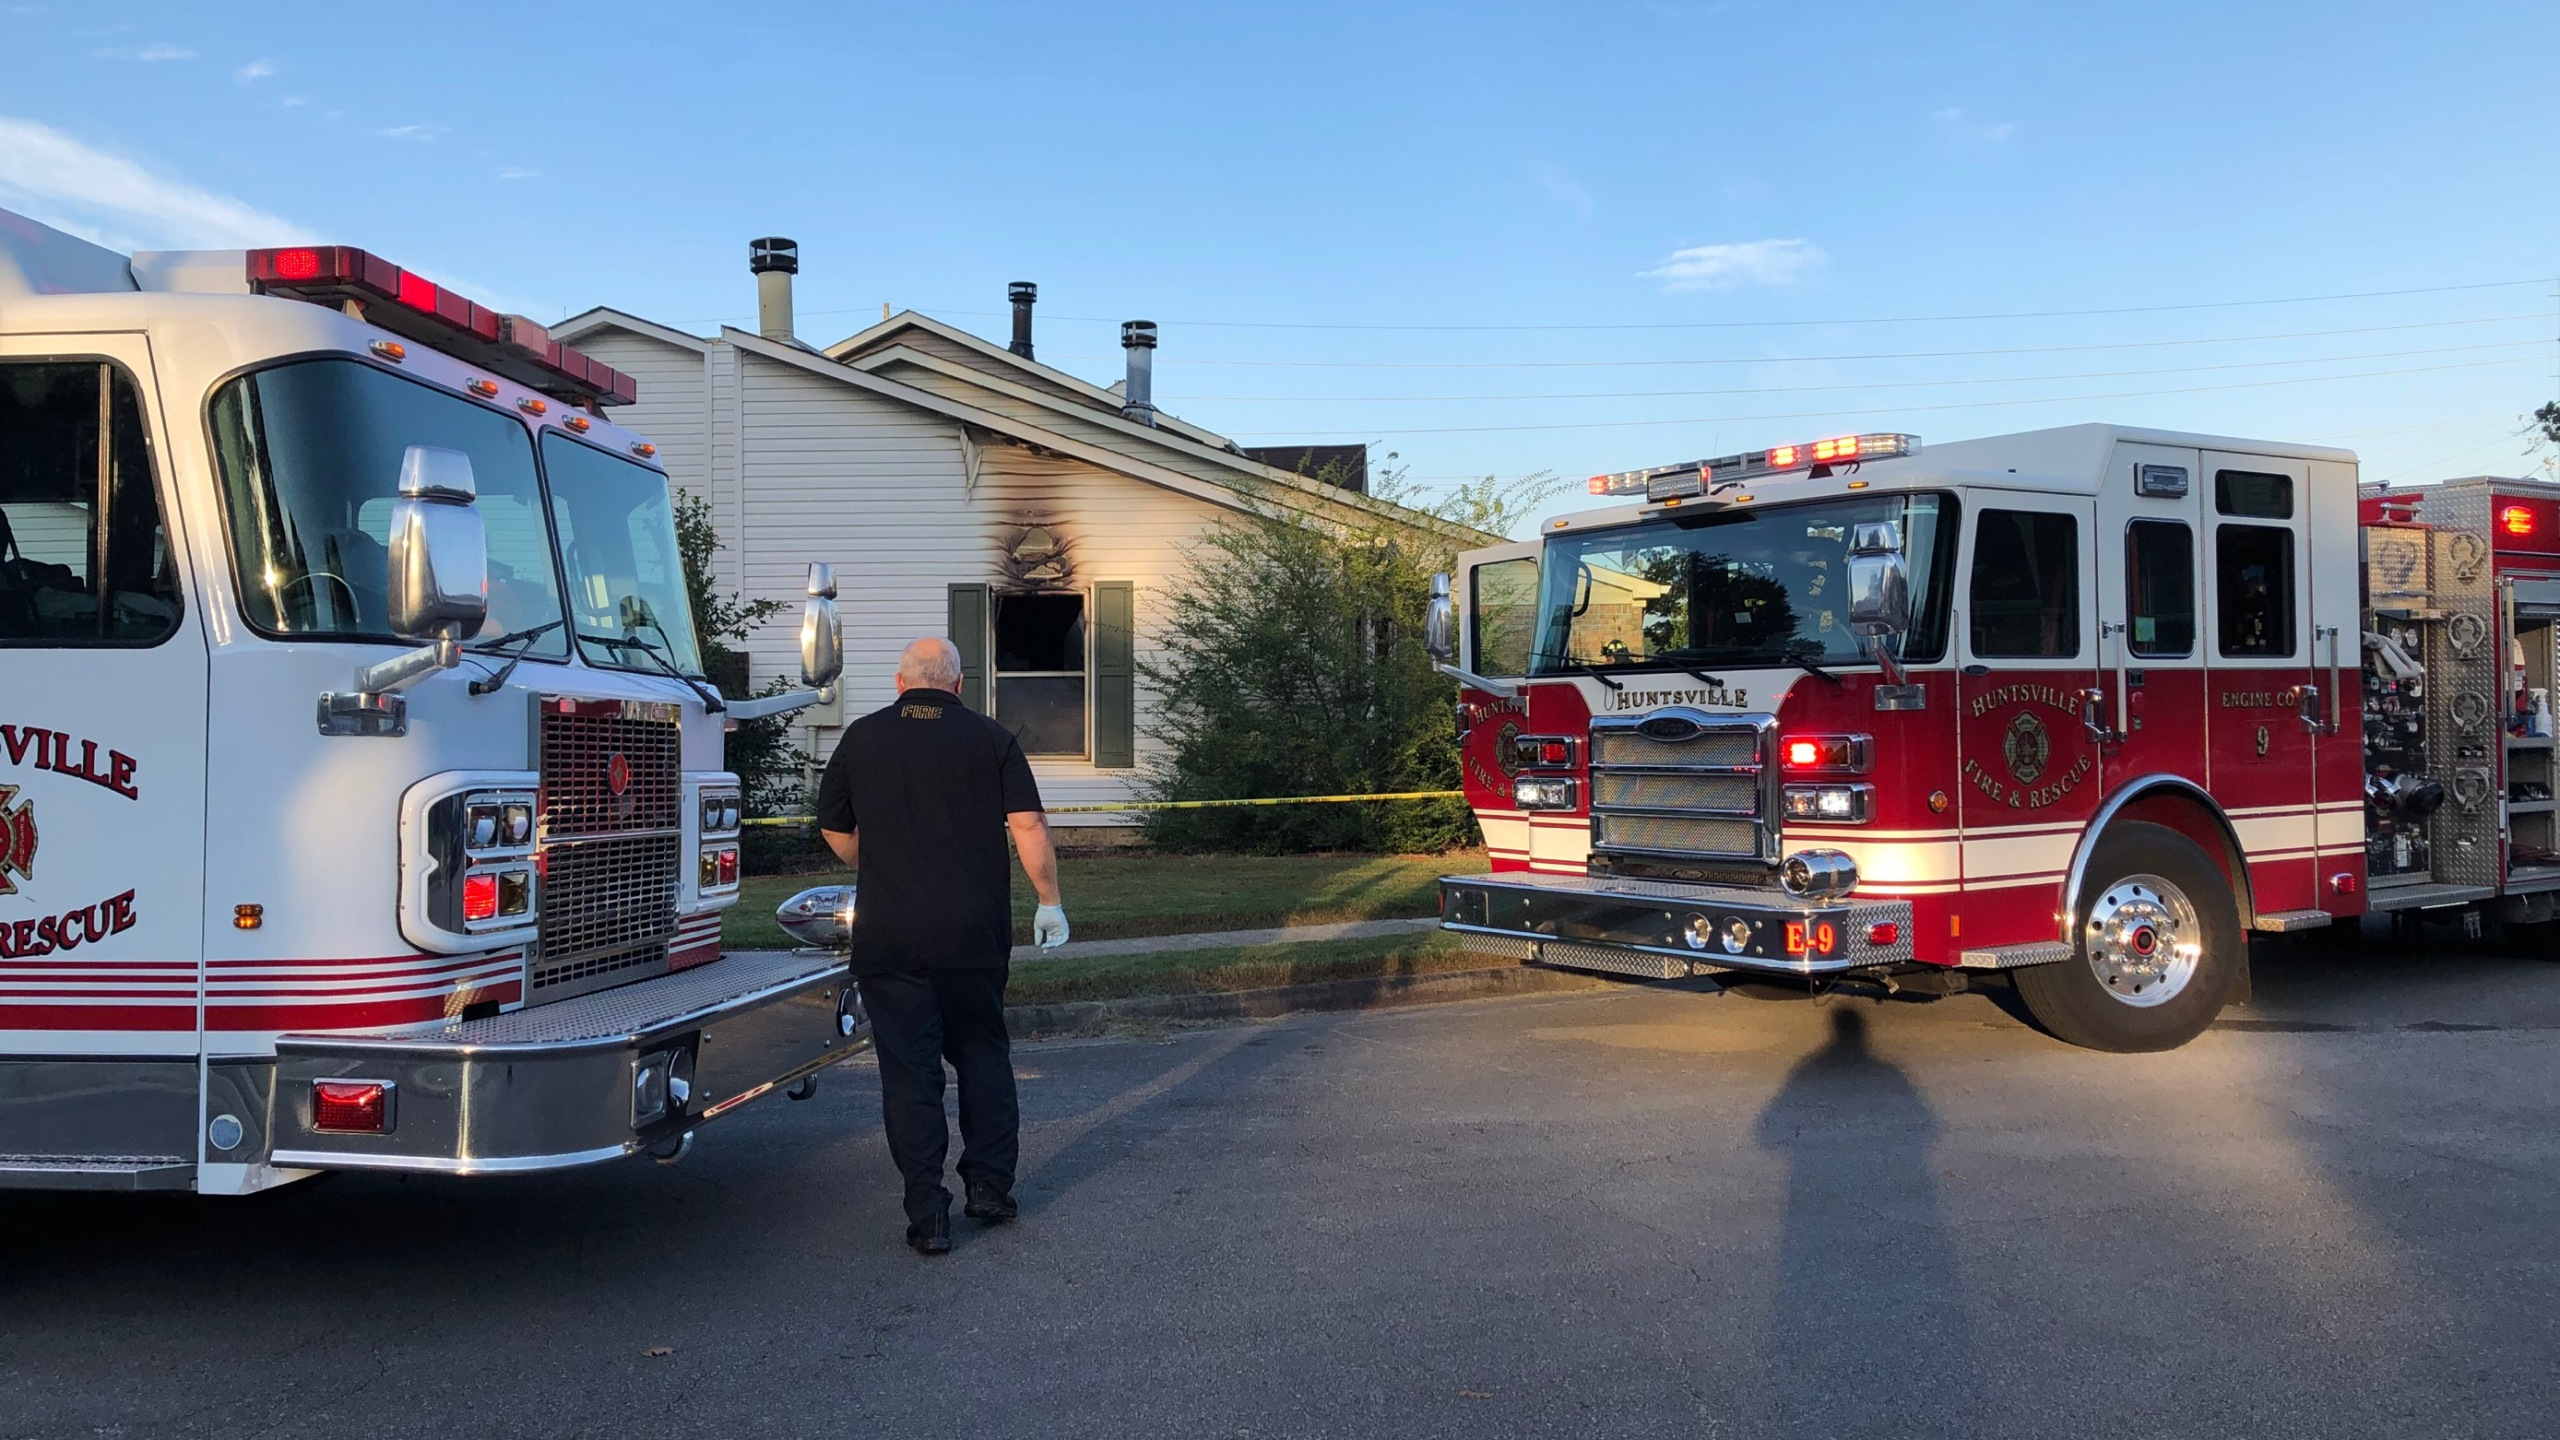 A house fire has claimed the life of a South Huntsville resident early Tuesday morning.